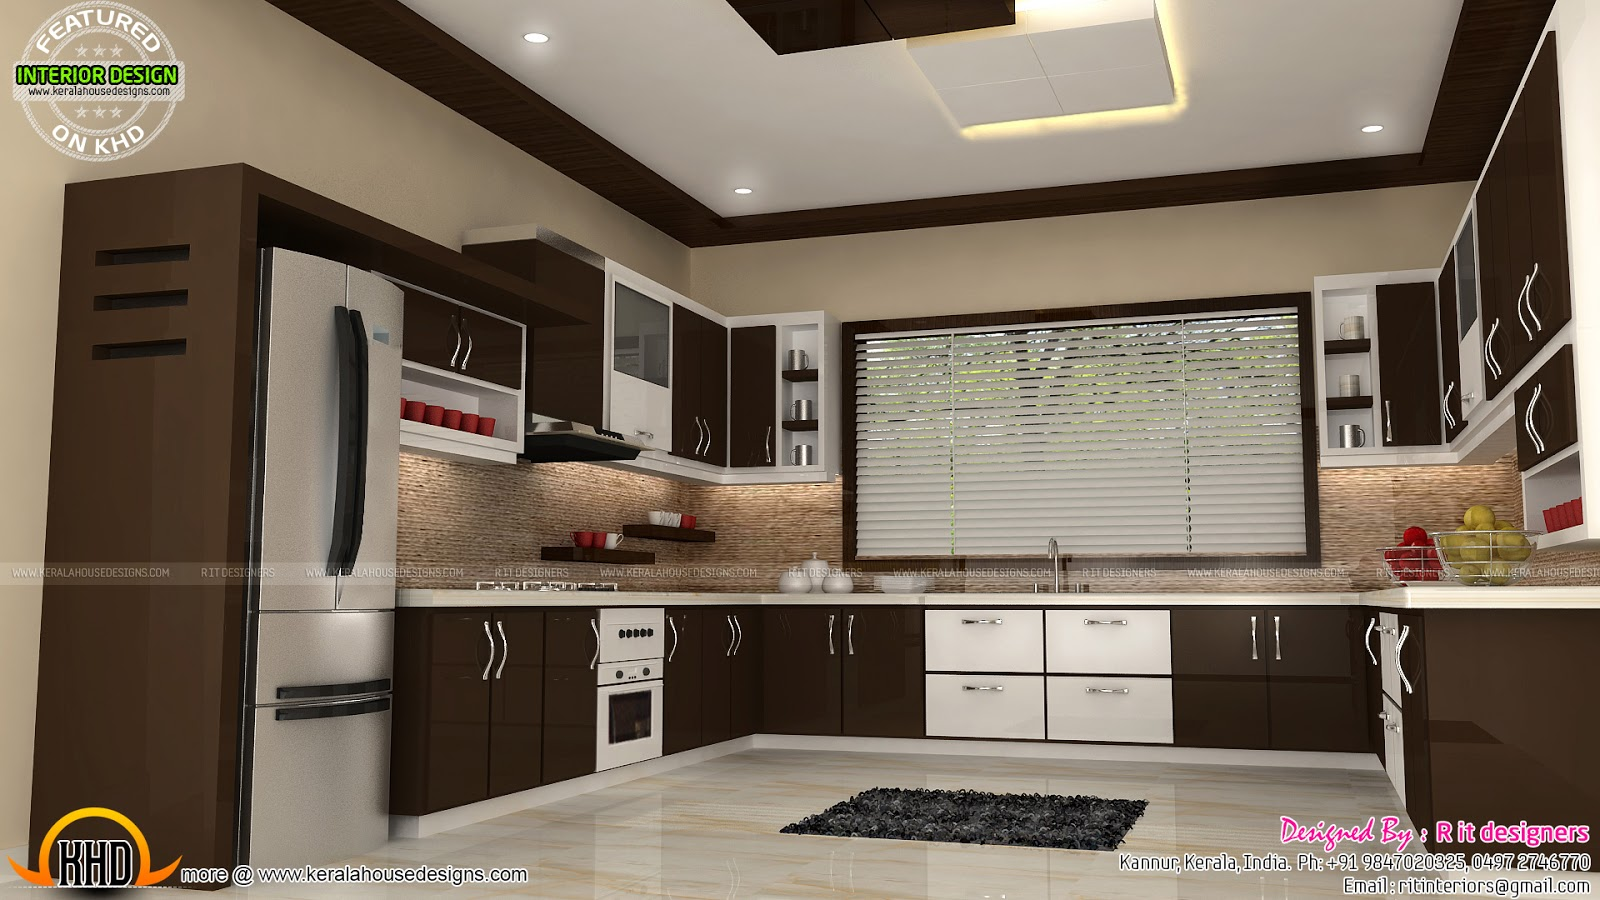 Housedesigners Com Kerala Home Design And Floor Plans Interiors Of Bedrooms